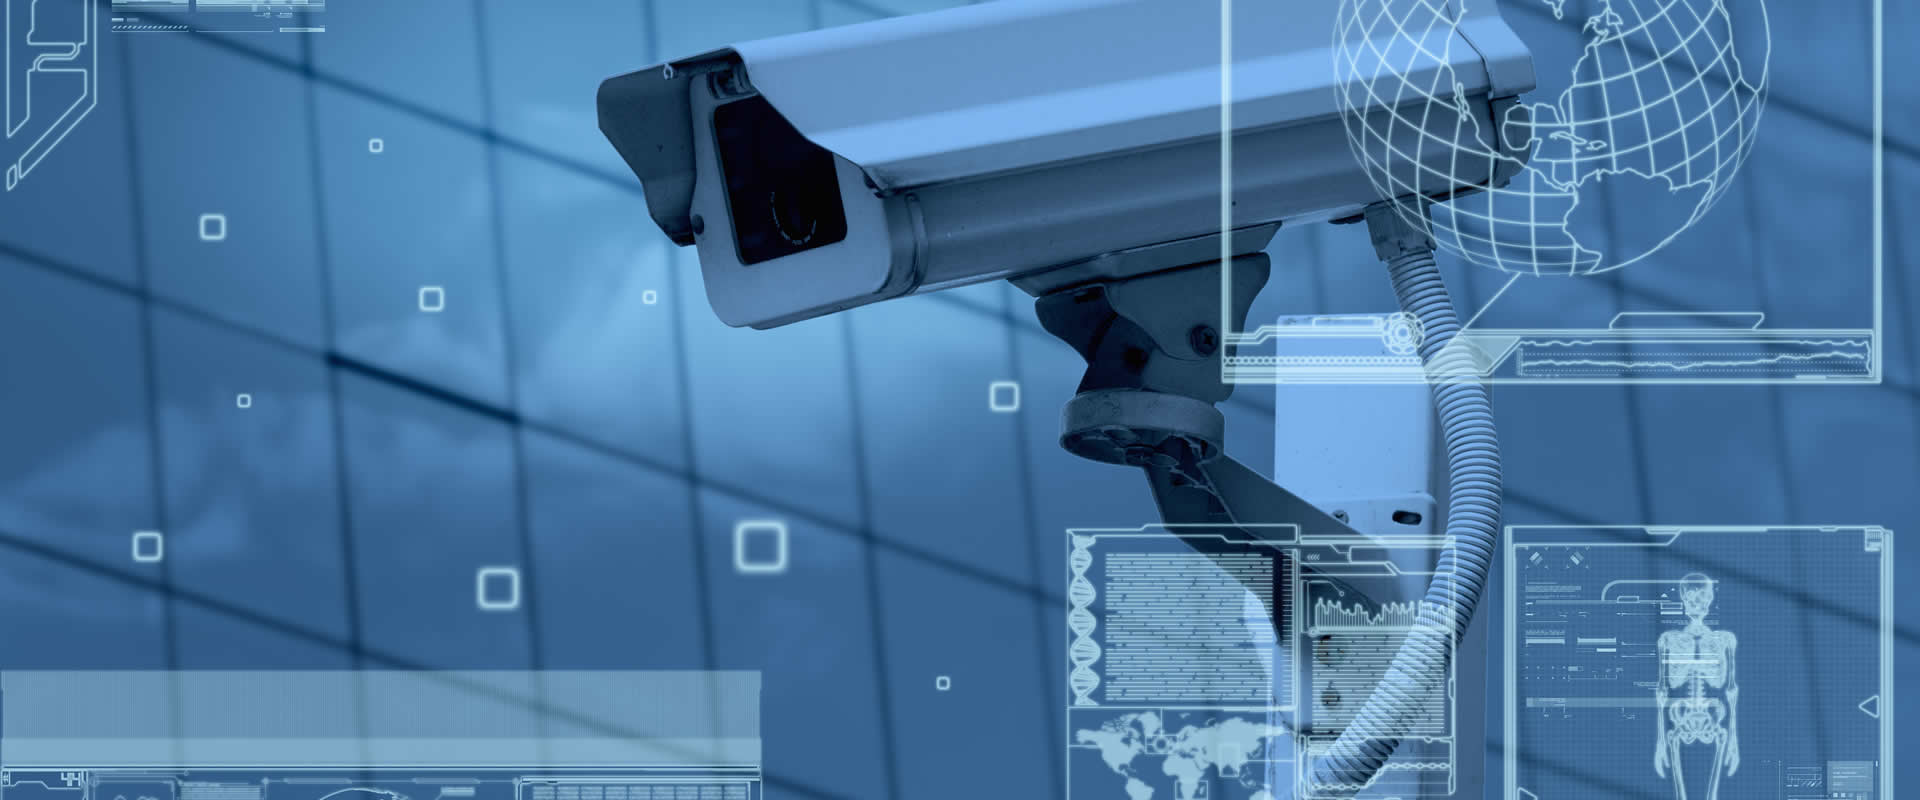 Digital Security Systems E Infotech Systems And